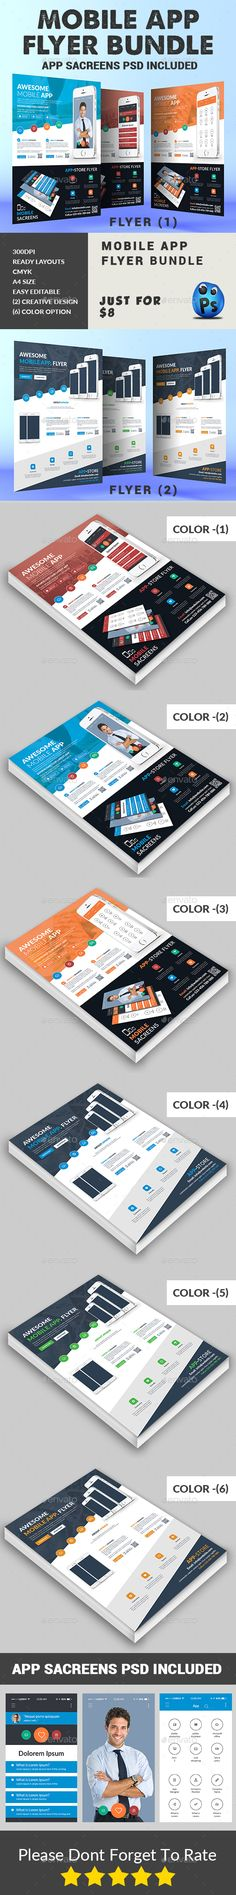 Mobile App Flyers Template v3 Flyer template and Mobile app - resume template app